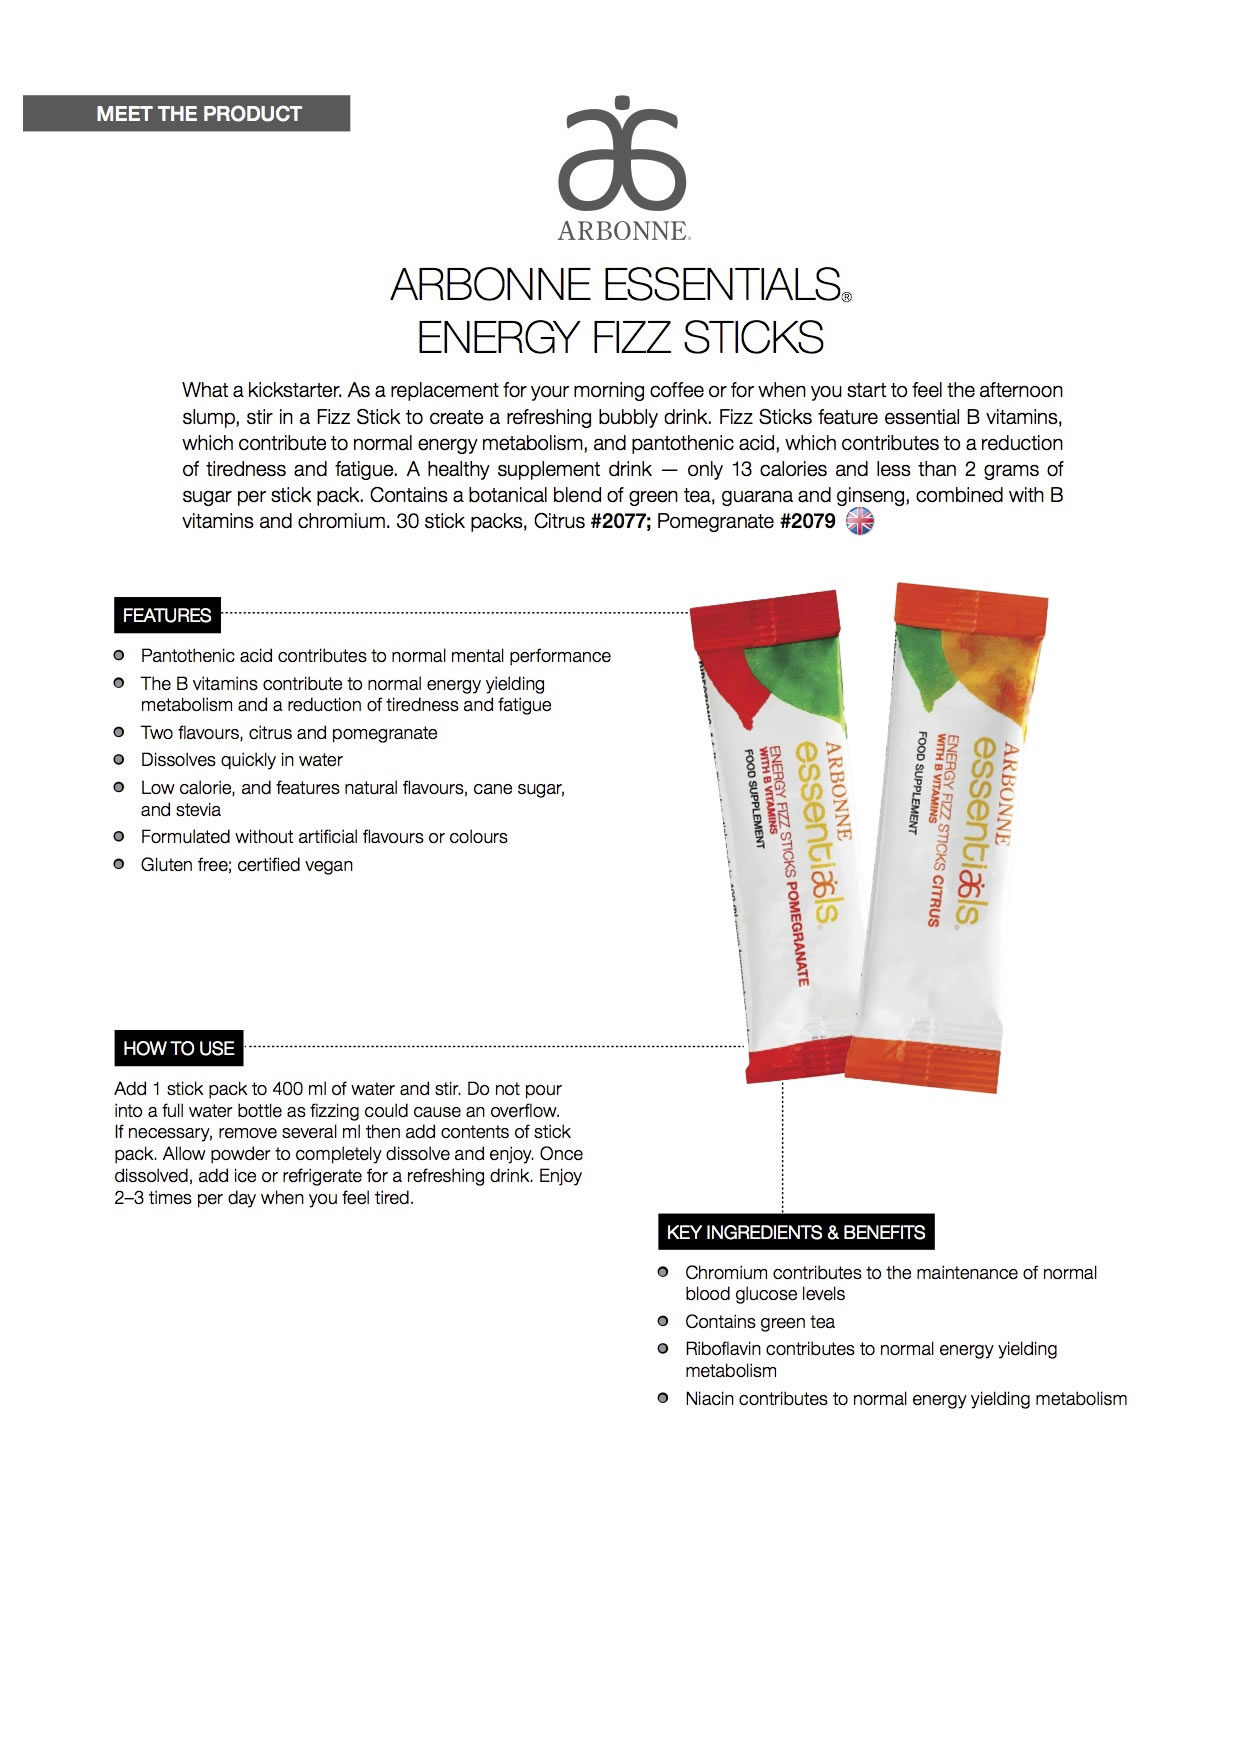 Arbonne Essentials Energy Fizz Sticks